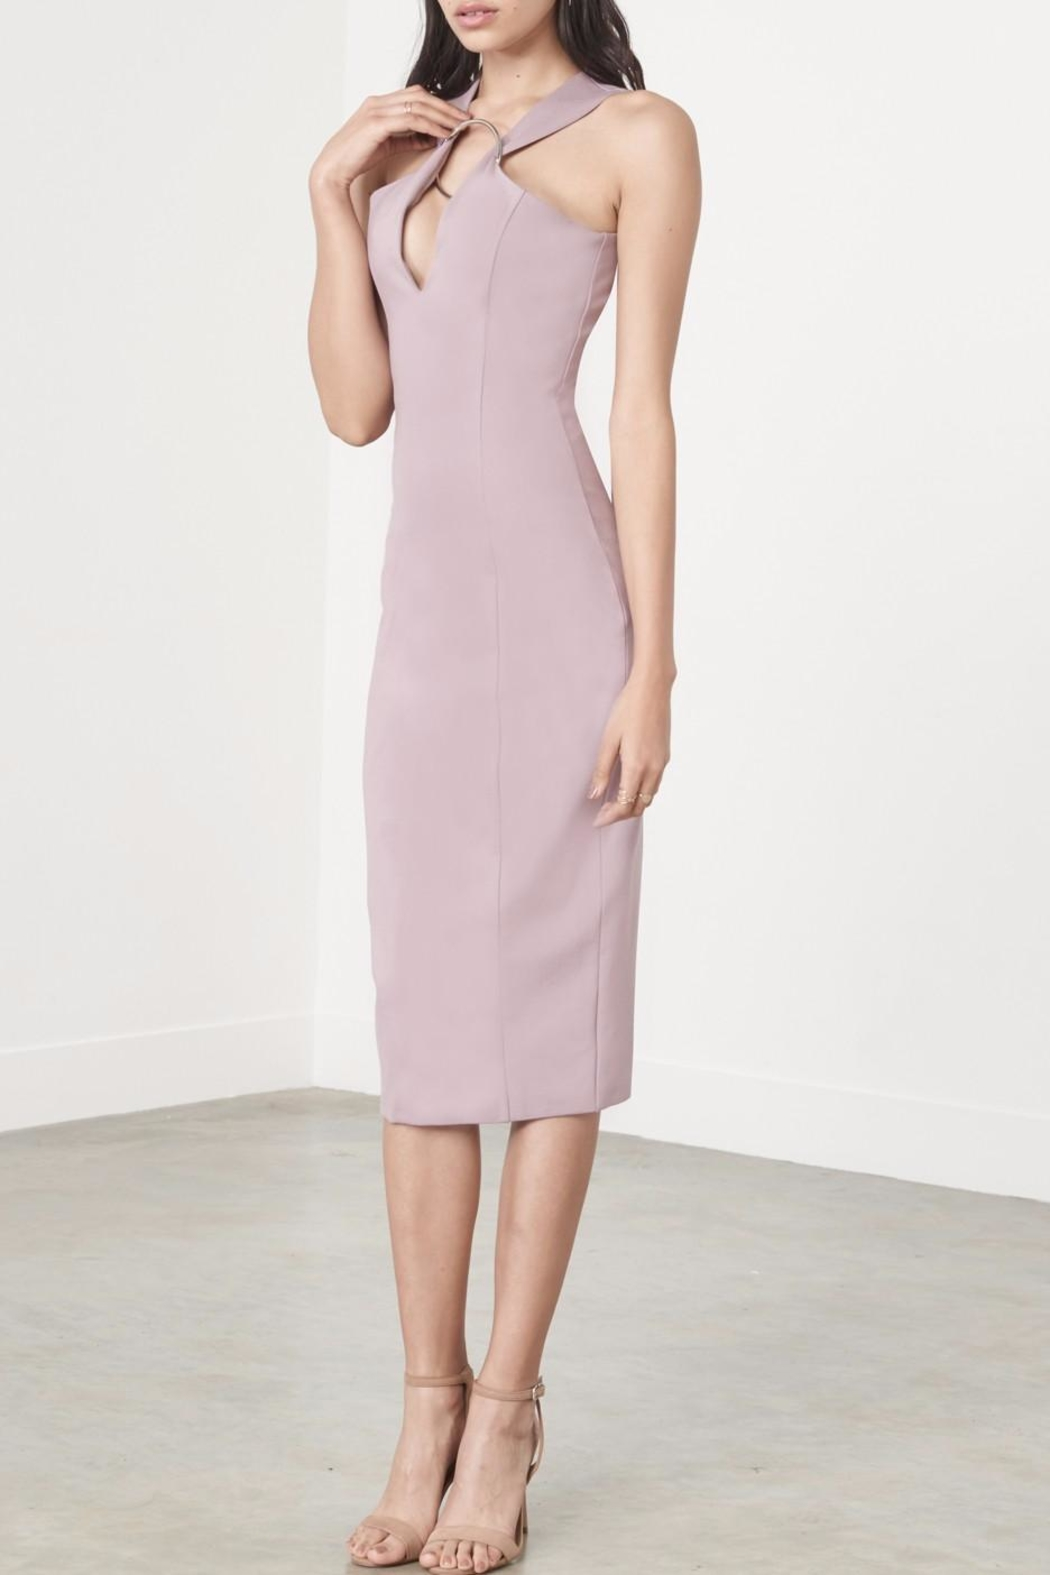 LAVISH ALICE Mauve Metal Ring Dress - Main Image